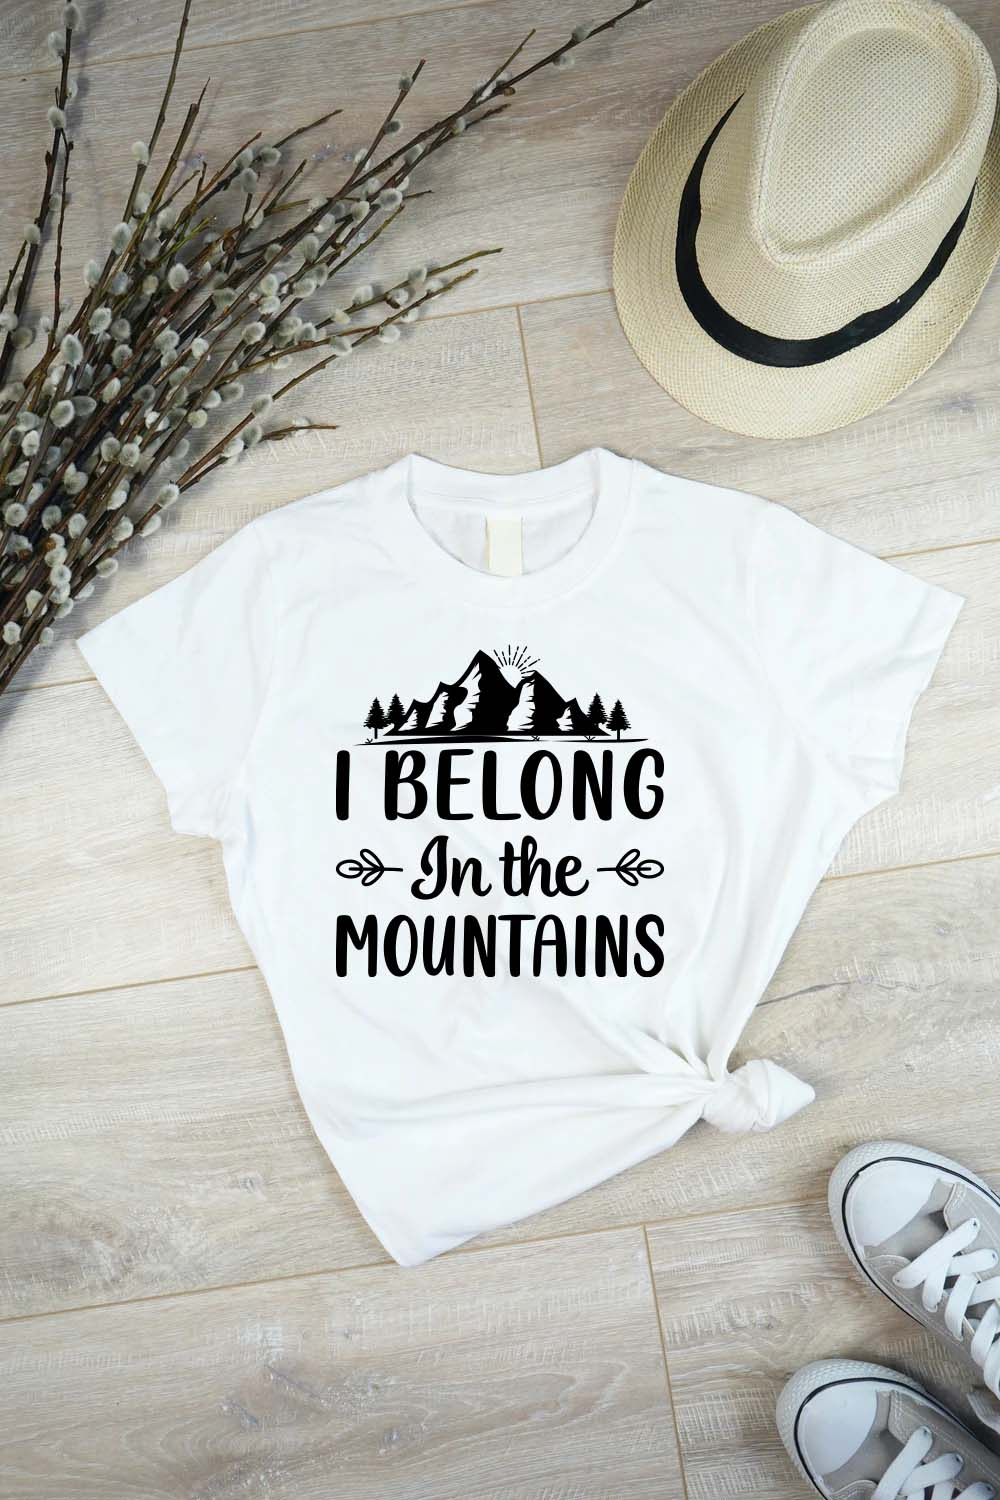 I BELONG IN THE MOUNTAINS